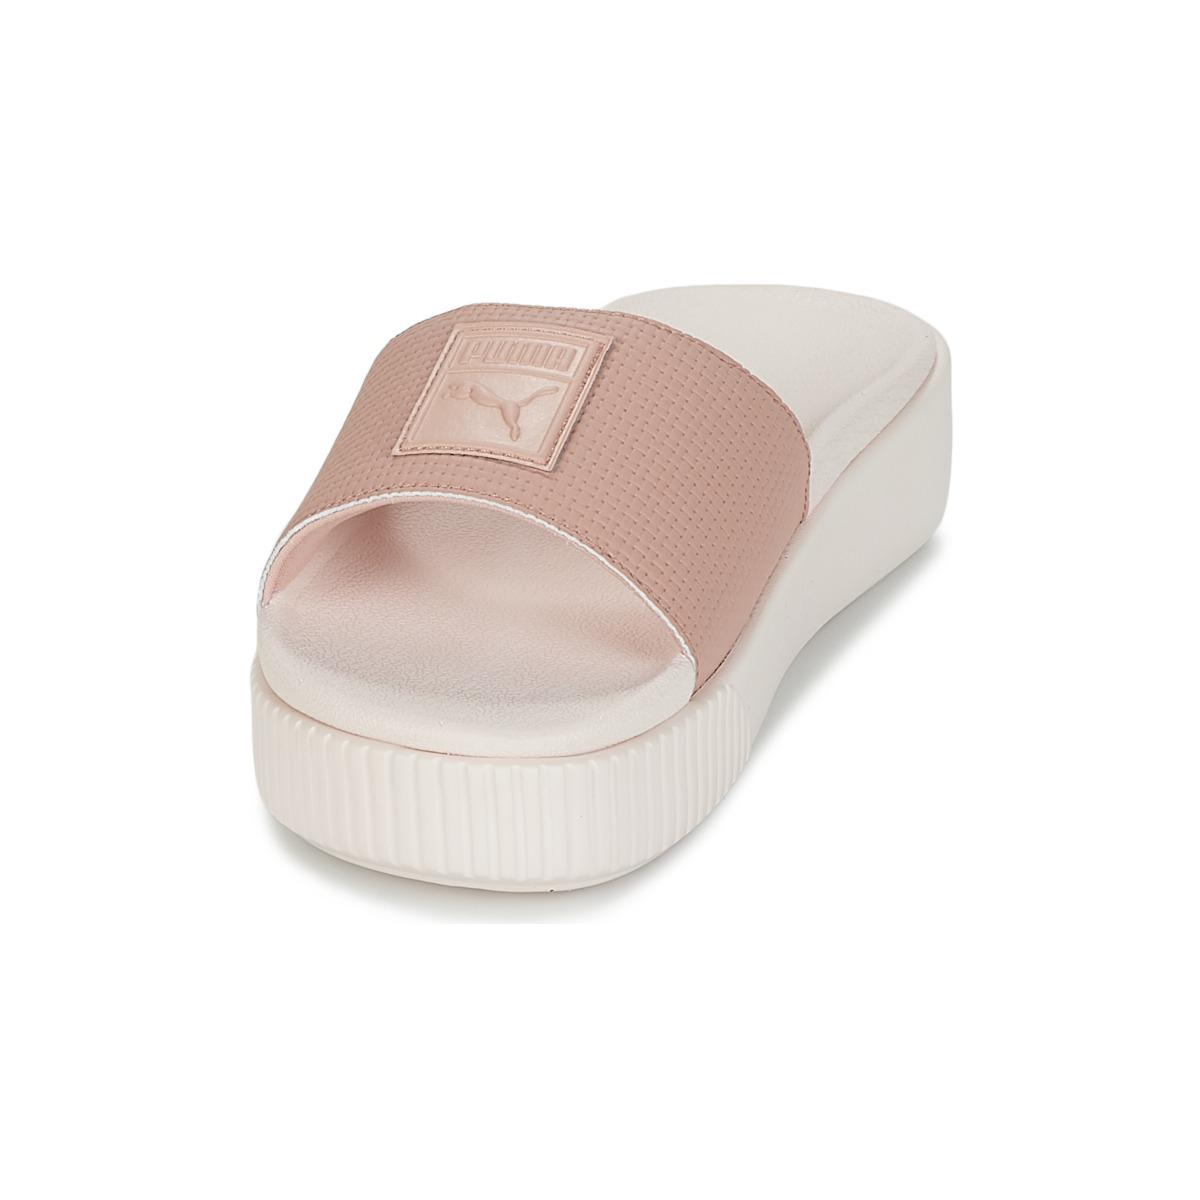 669bd7e71f06 PUMA - Platform Slide Wns Ep Women s Mules   Casual Shoes In Pink - Lyst.  View fullscreen